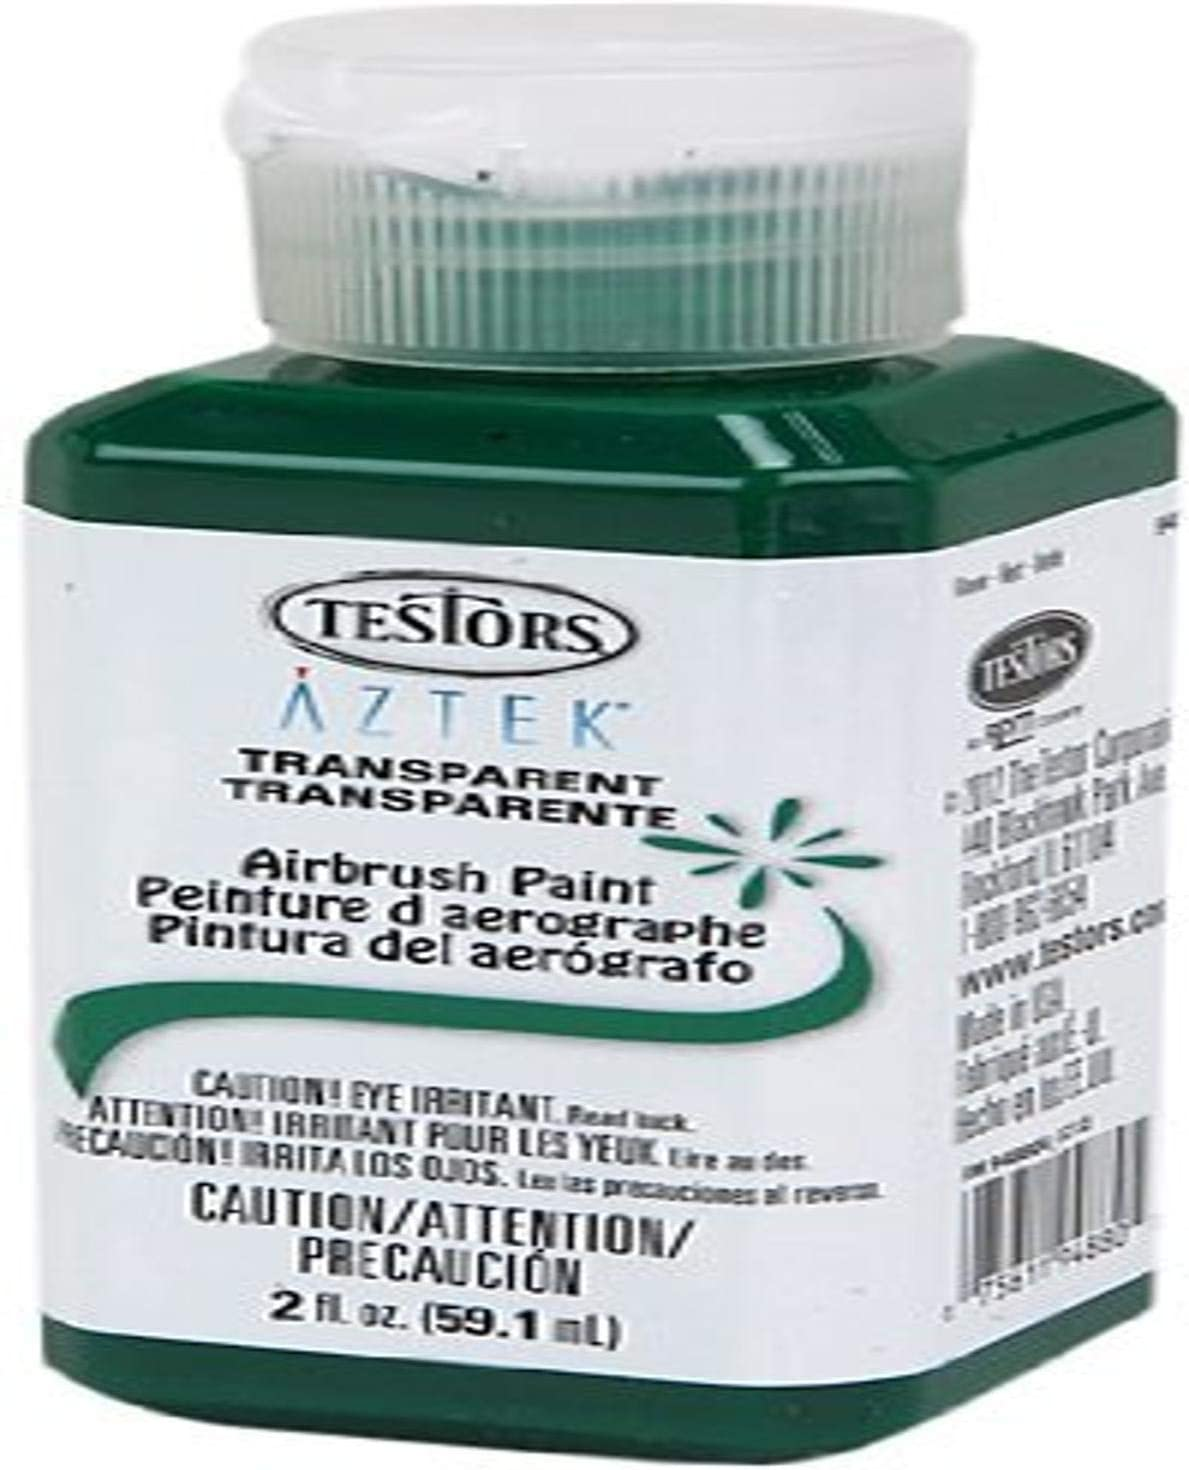 Testors Airbrush Paint, Transparent Green